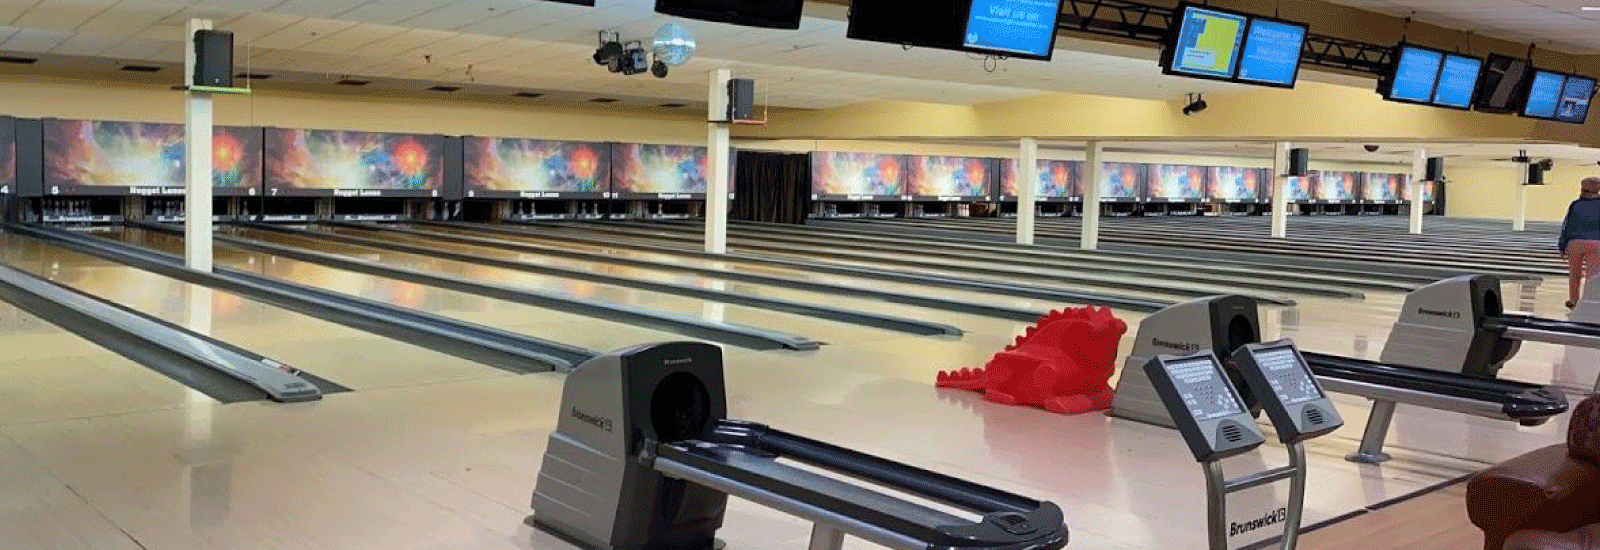 Bowling Alley Fort Wainwright